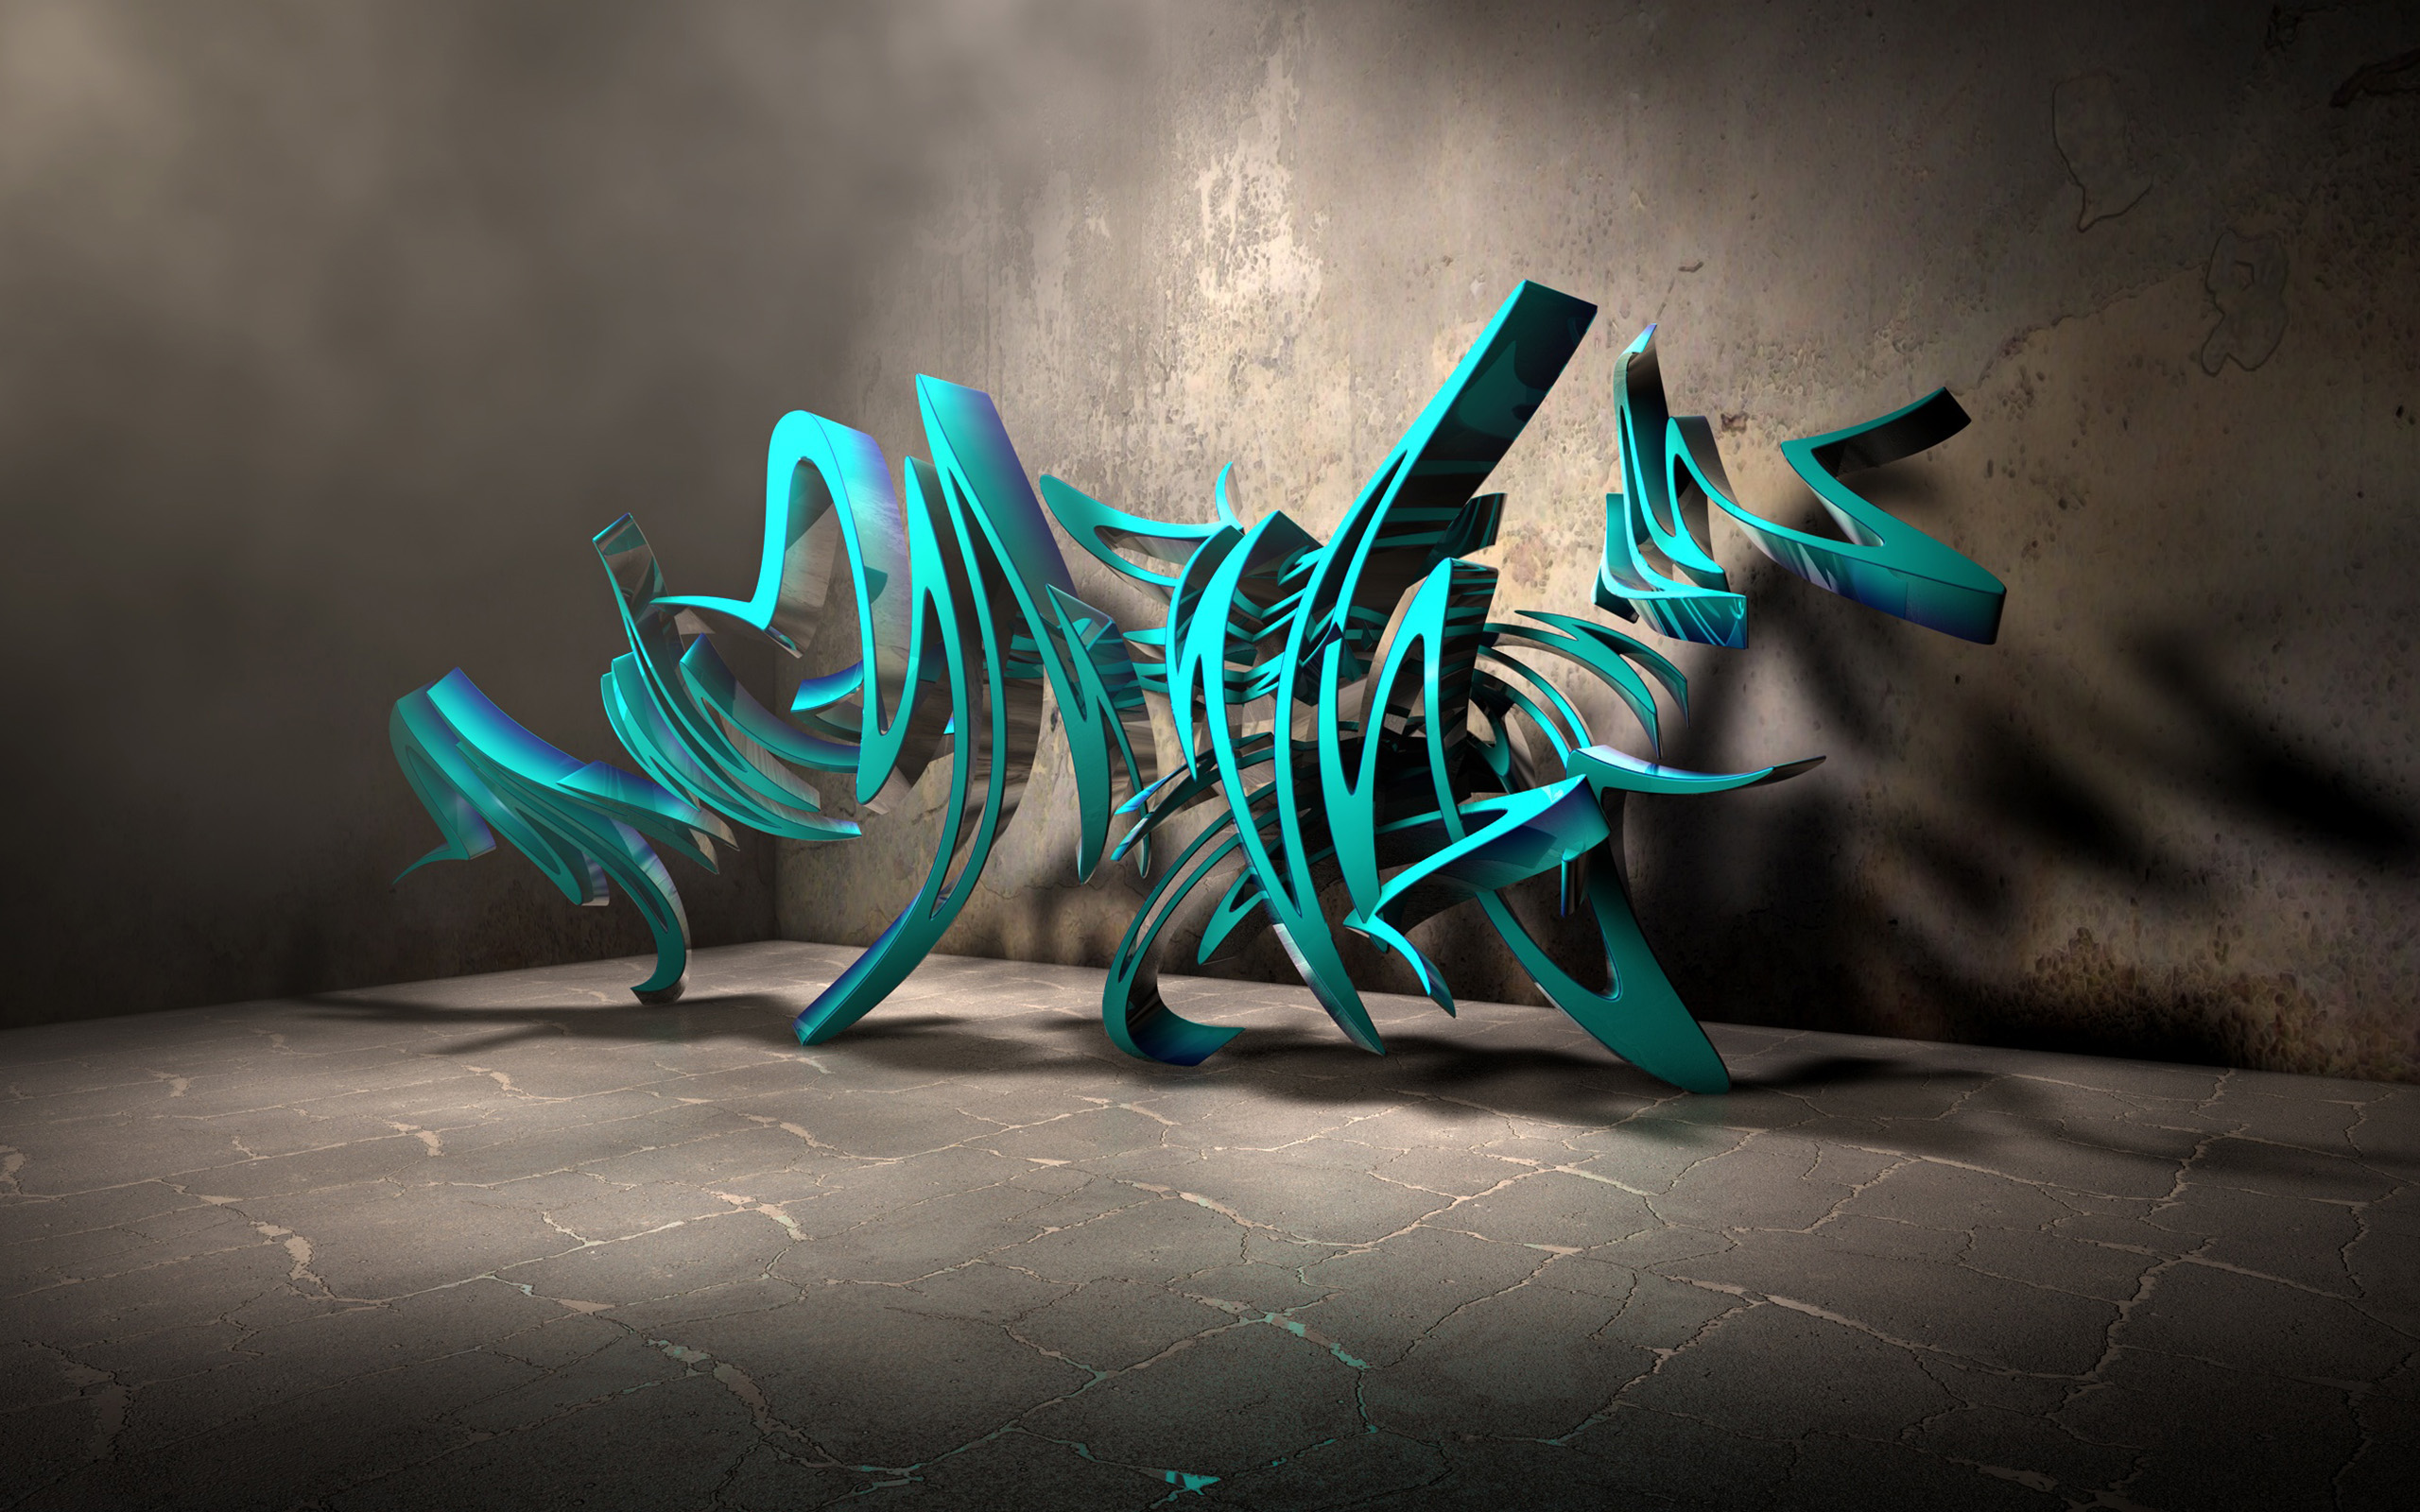 Abstract Graffiti Wallpaper 2560x1600